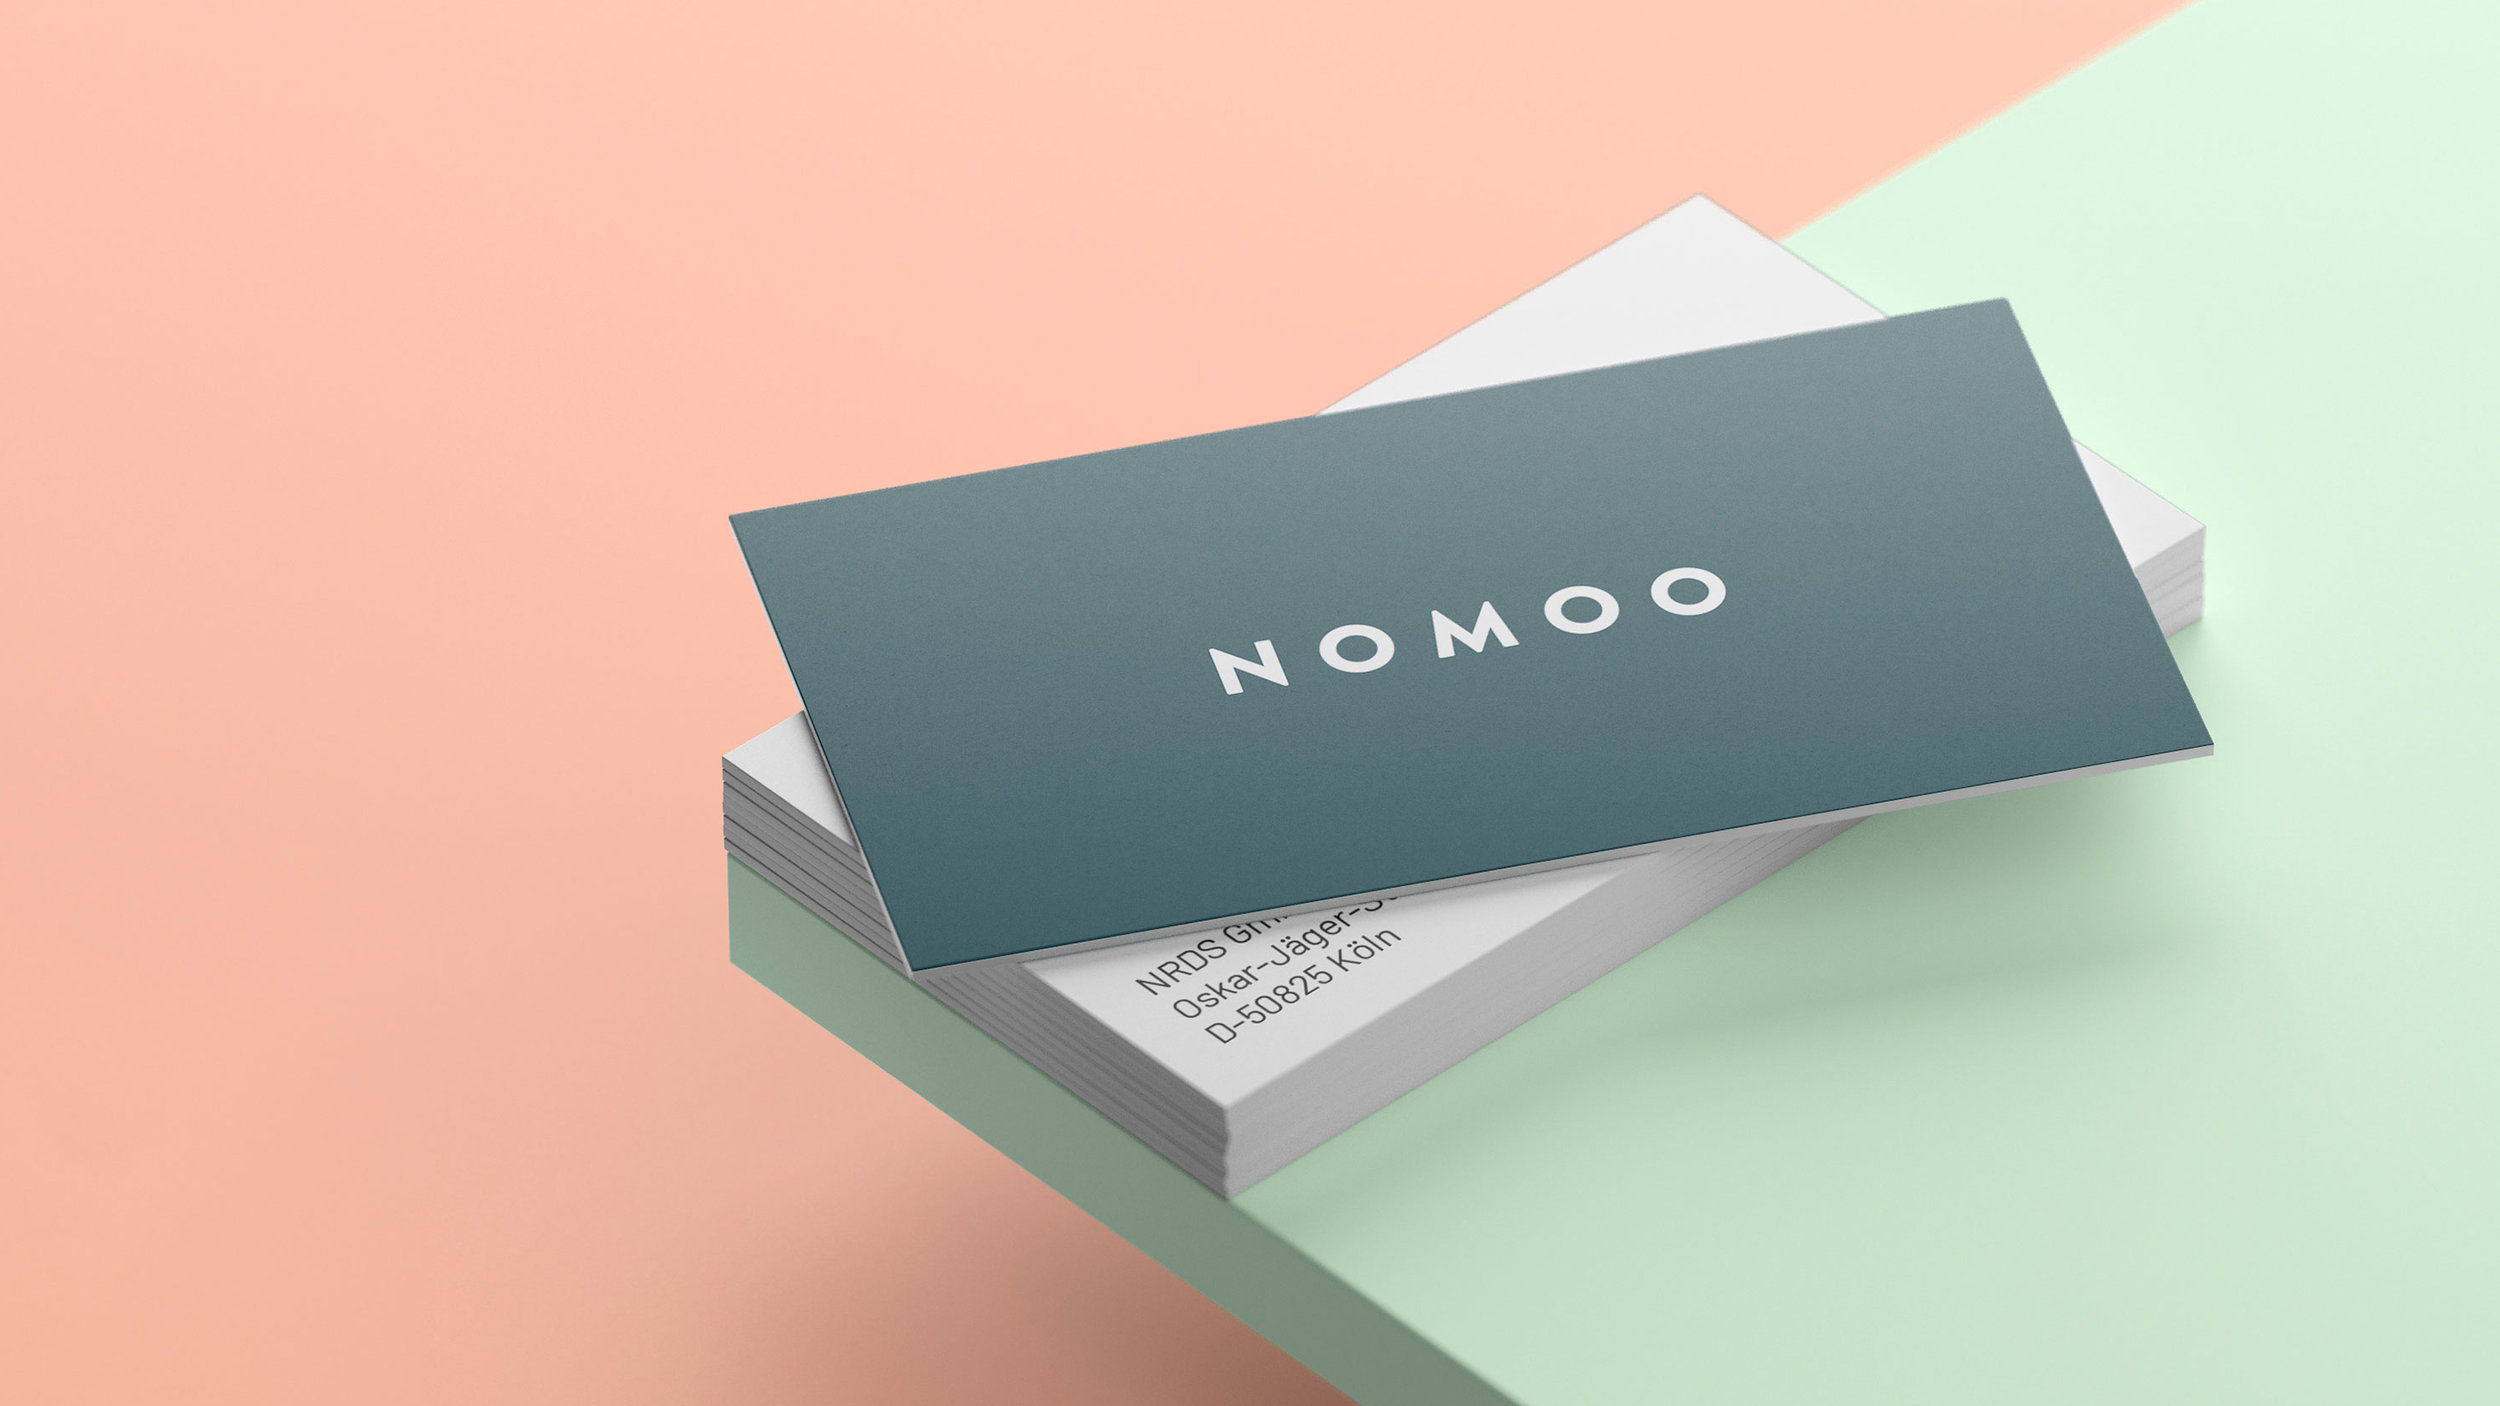 NOMOO_BusinessCards.jpg